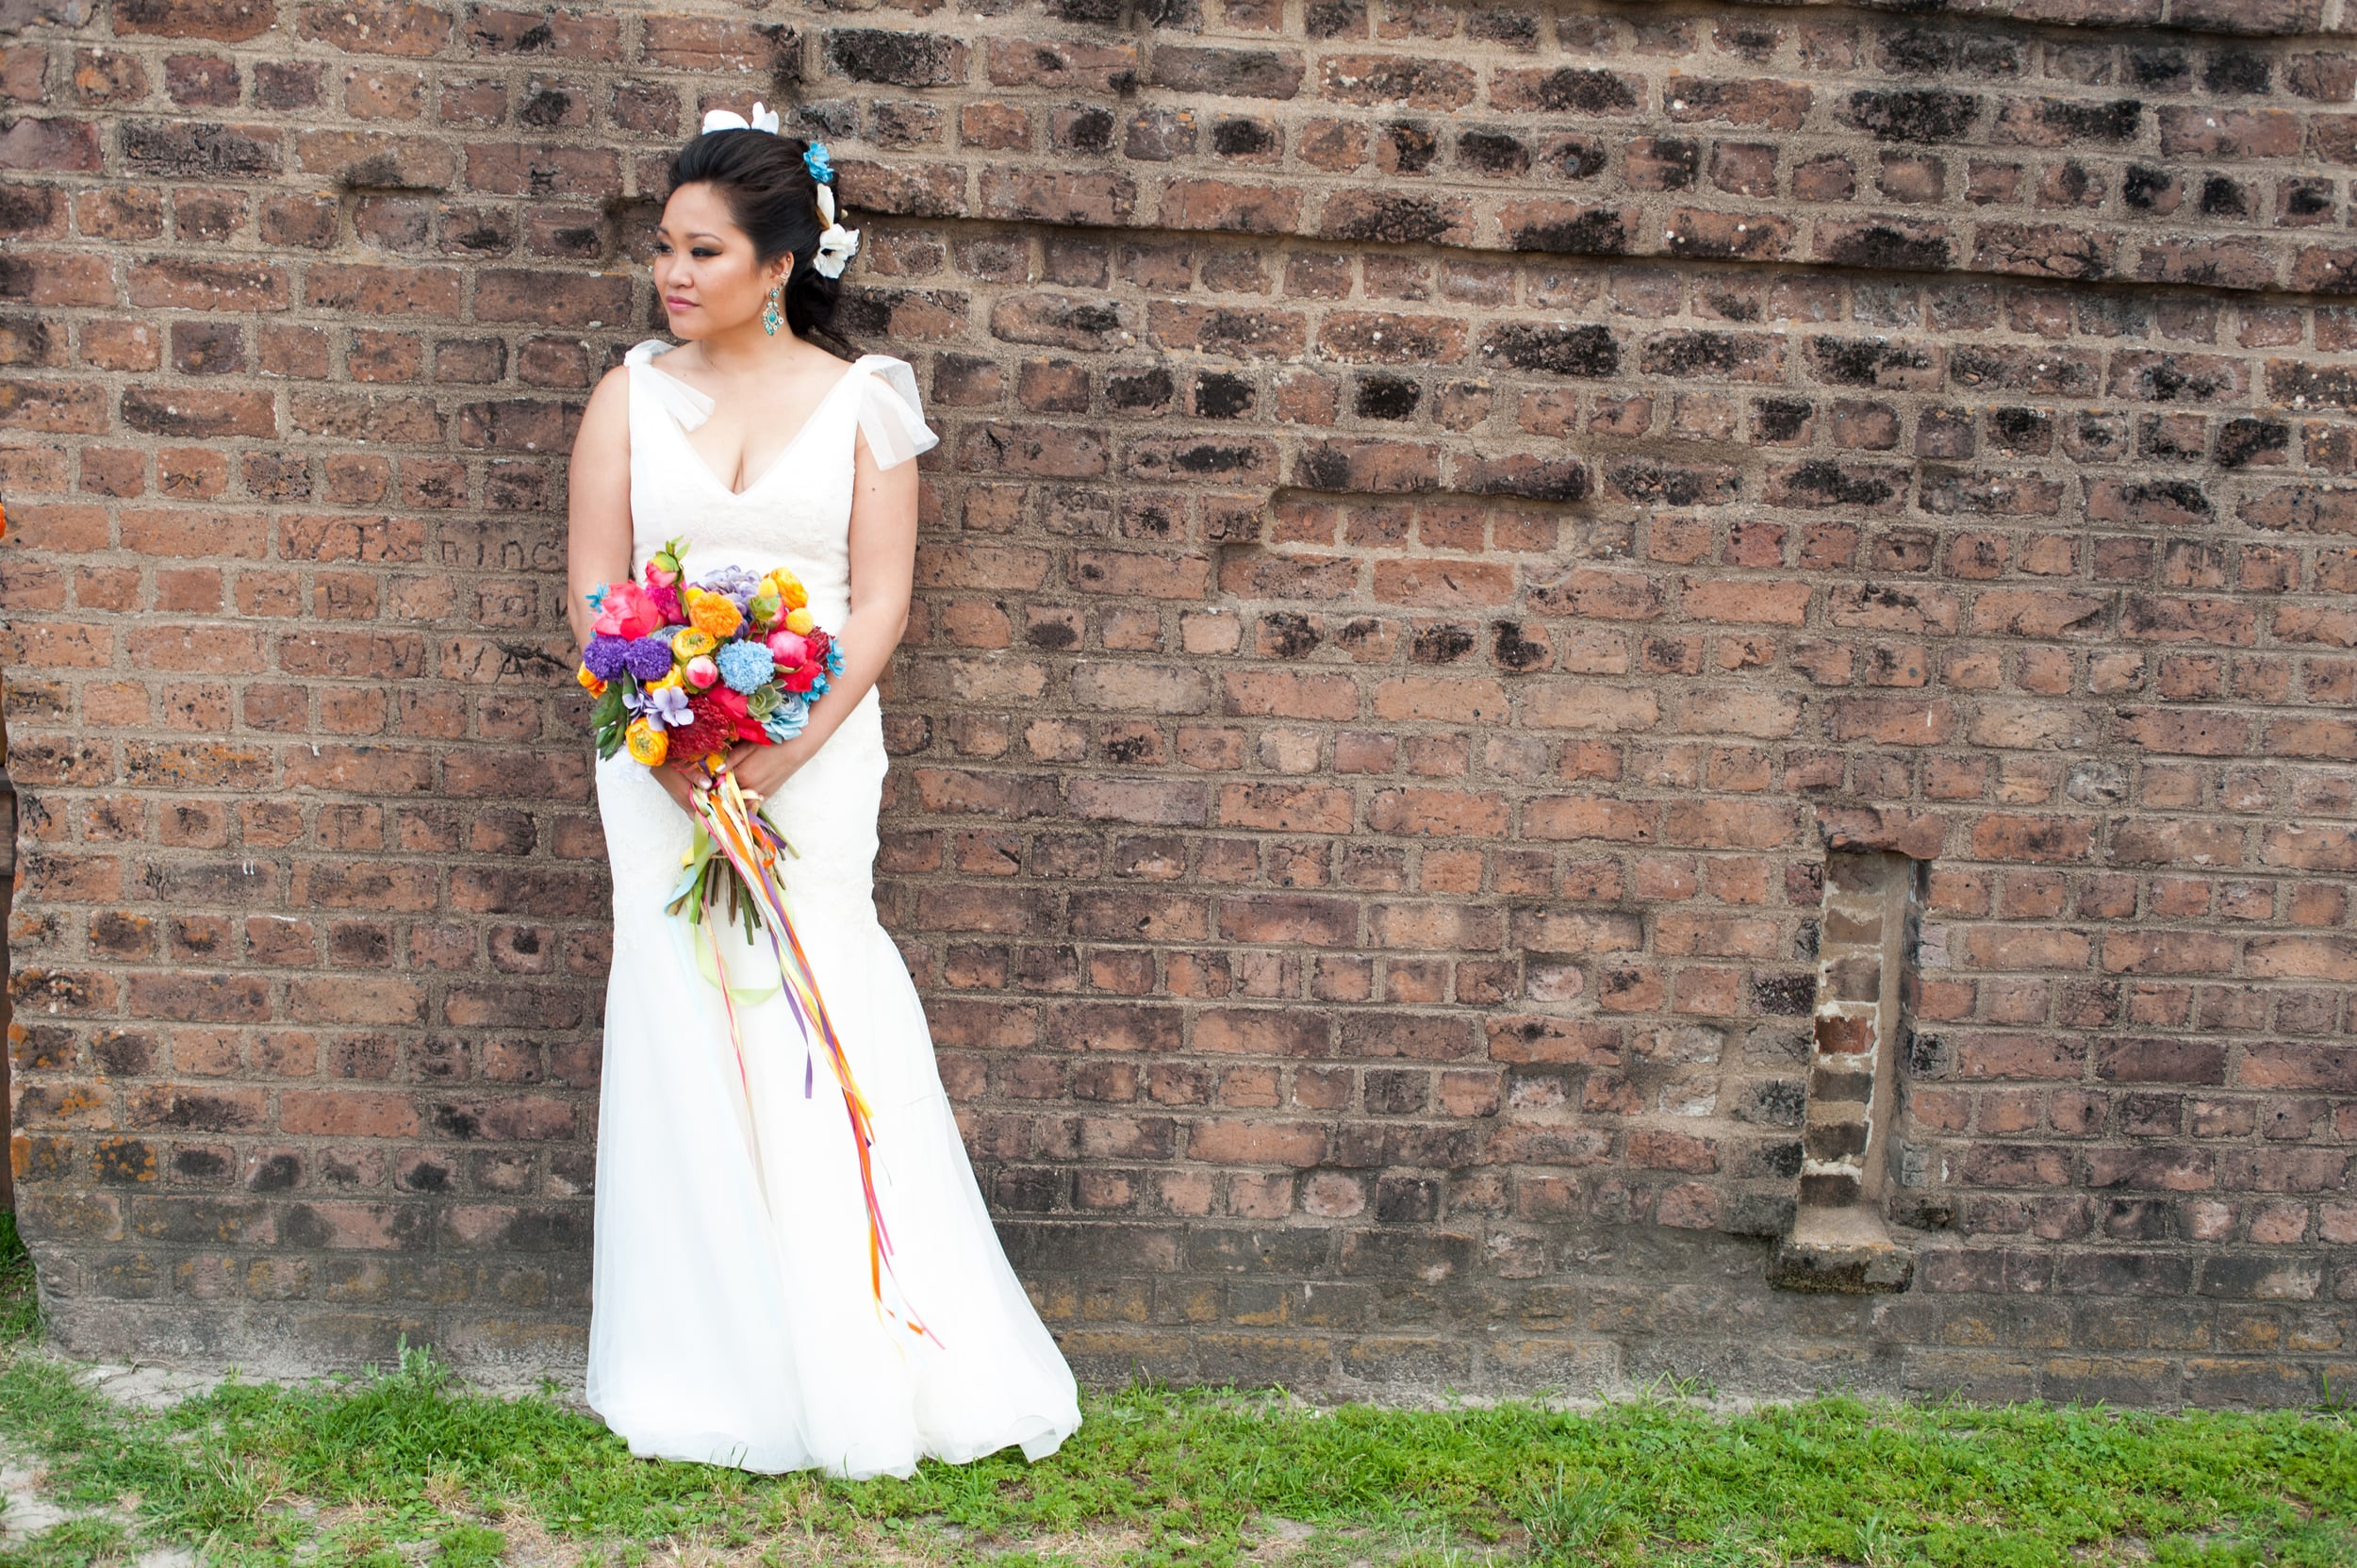 jeff-and-mollie-take-pictures-ivory-and-beau-wedding-planning-ivory-and-beau-bridal-boutique-old-fort-jackson-wedding-colorful-wedding-savannah-wedding-planner-savannah-weddings-michelle-and-johnny-wedding-savannah-weddings-indie-wedding-19.jpg